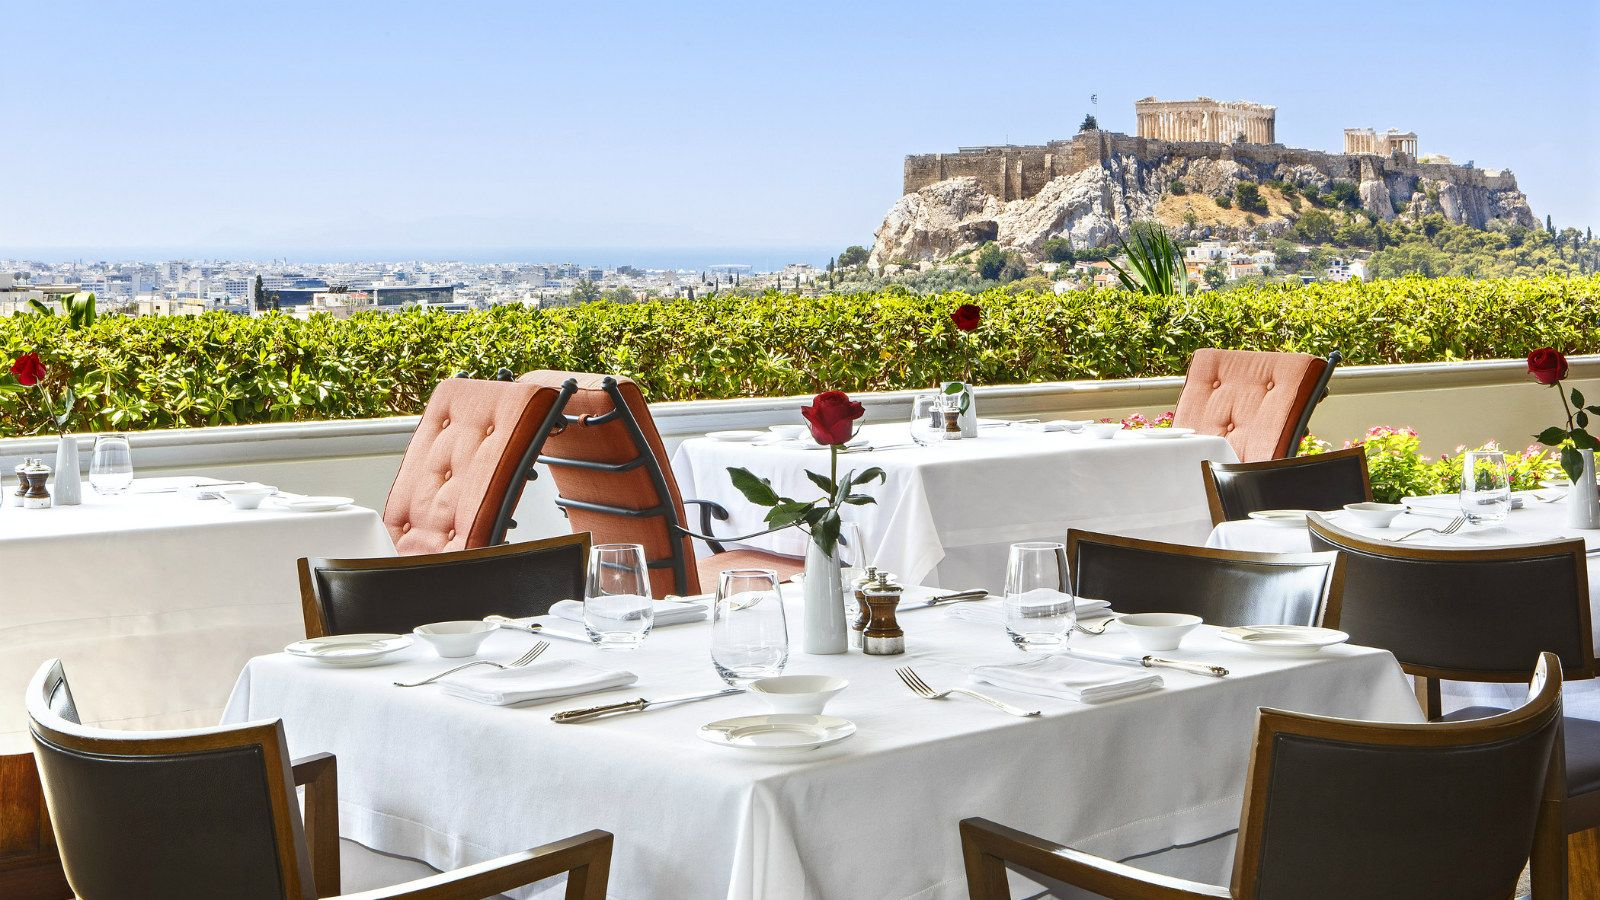 The GB Roof Garden Restaurant, serving breakfast, lunch and dinner with amazing views to the Acropolis - Hotel Grande Bretagne, Athens